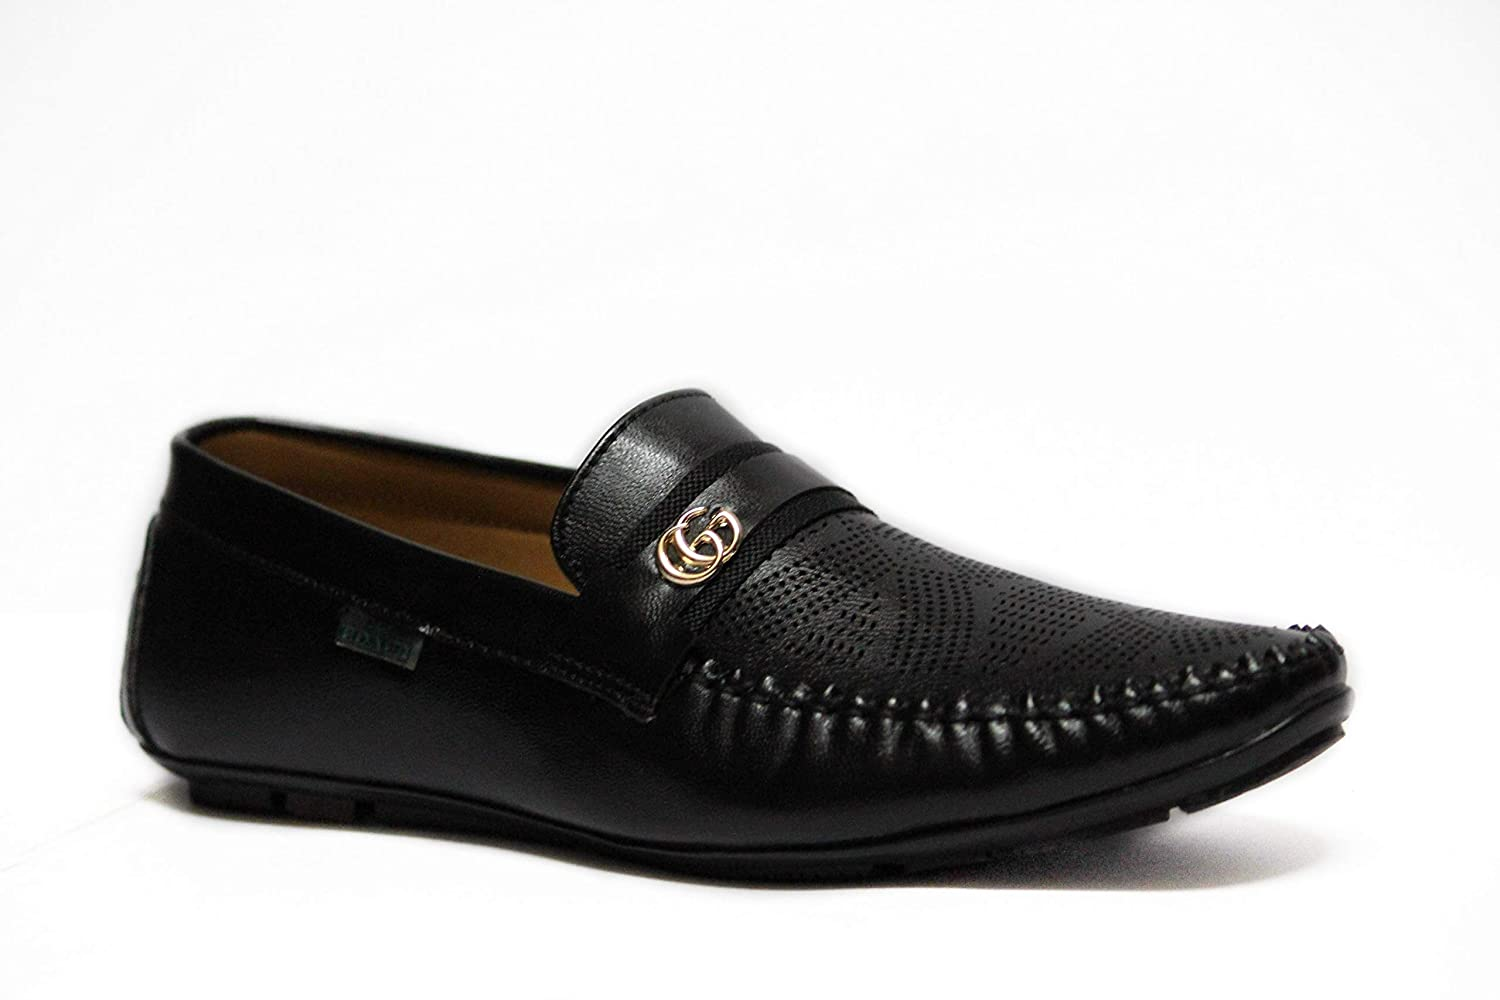 Shiny Leather Loafer Black Casual Shoes